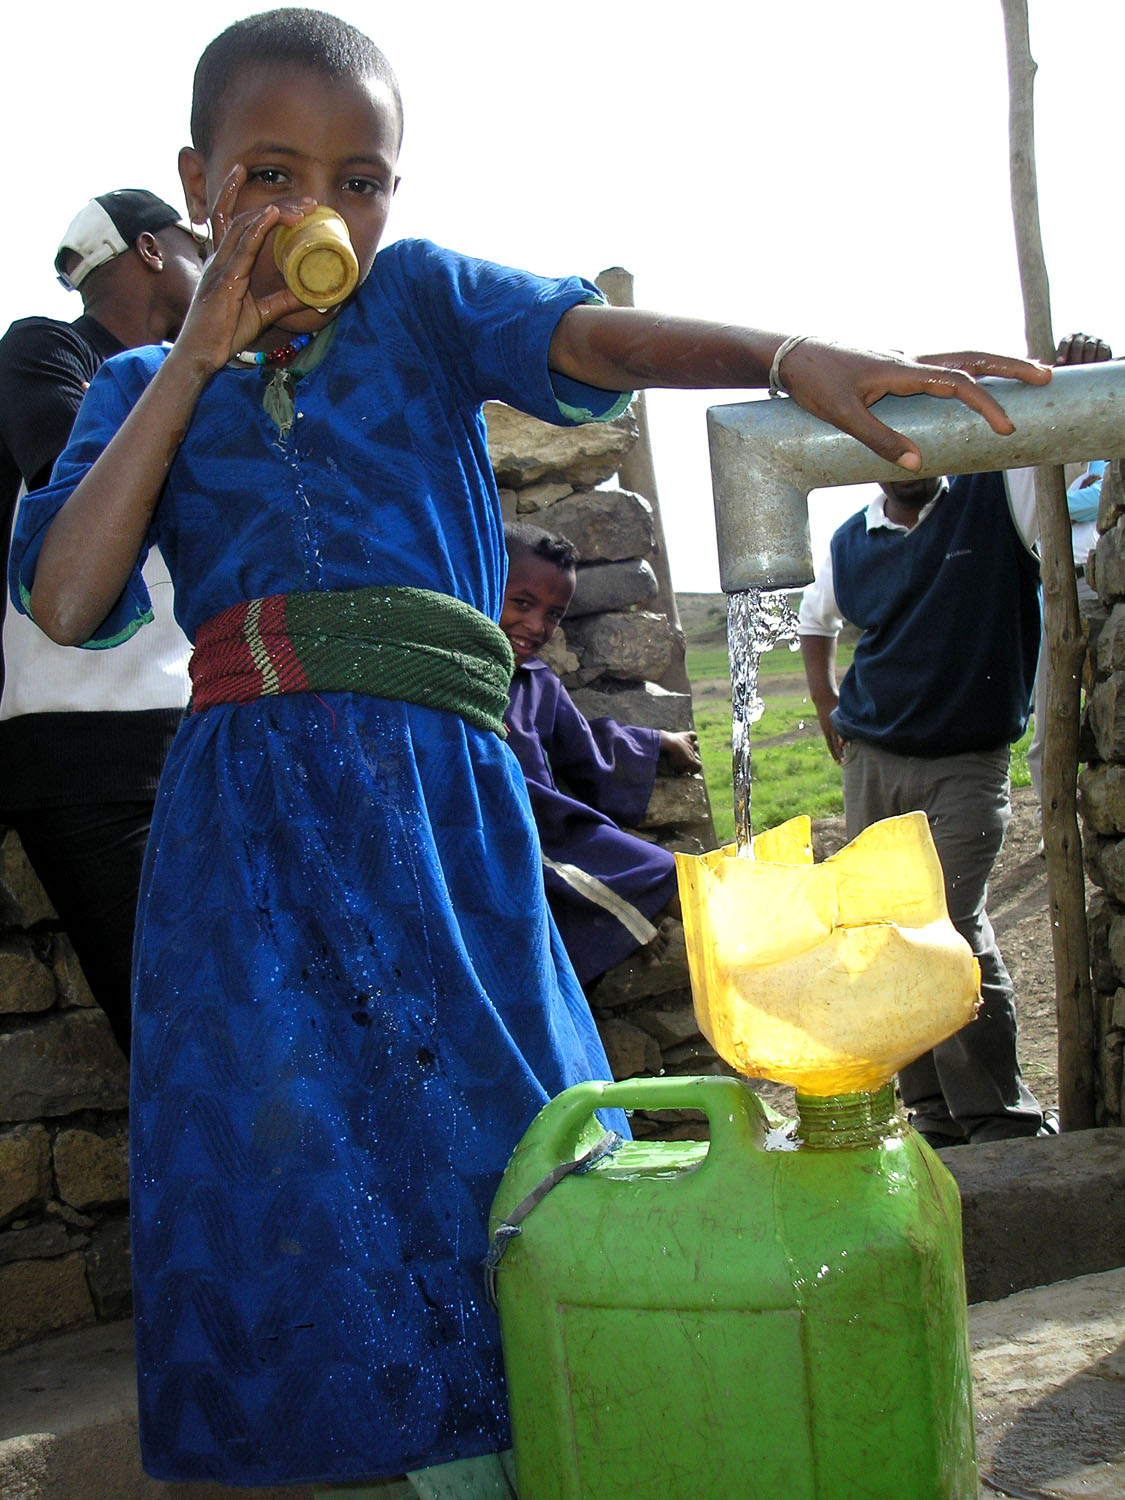 The right to clean and fresh water